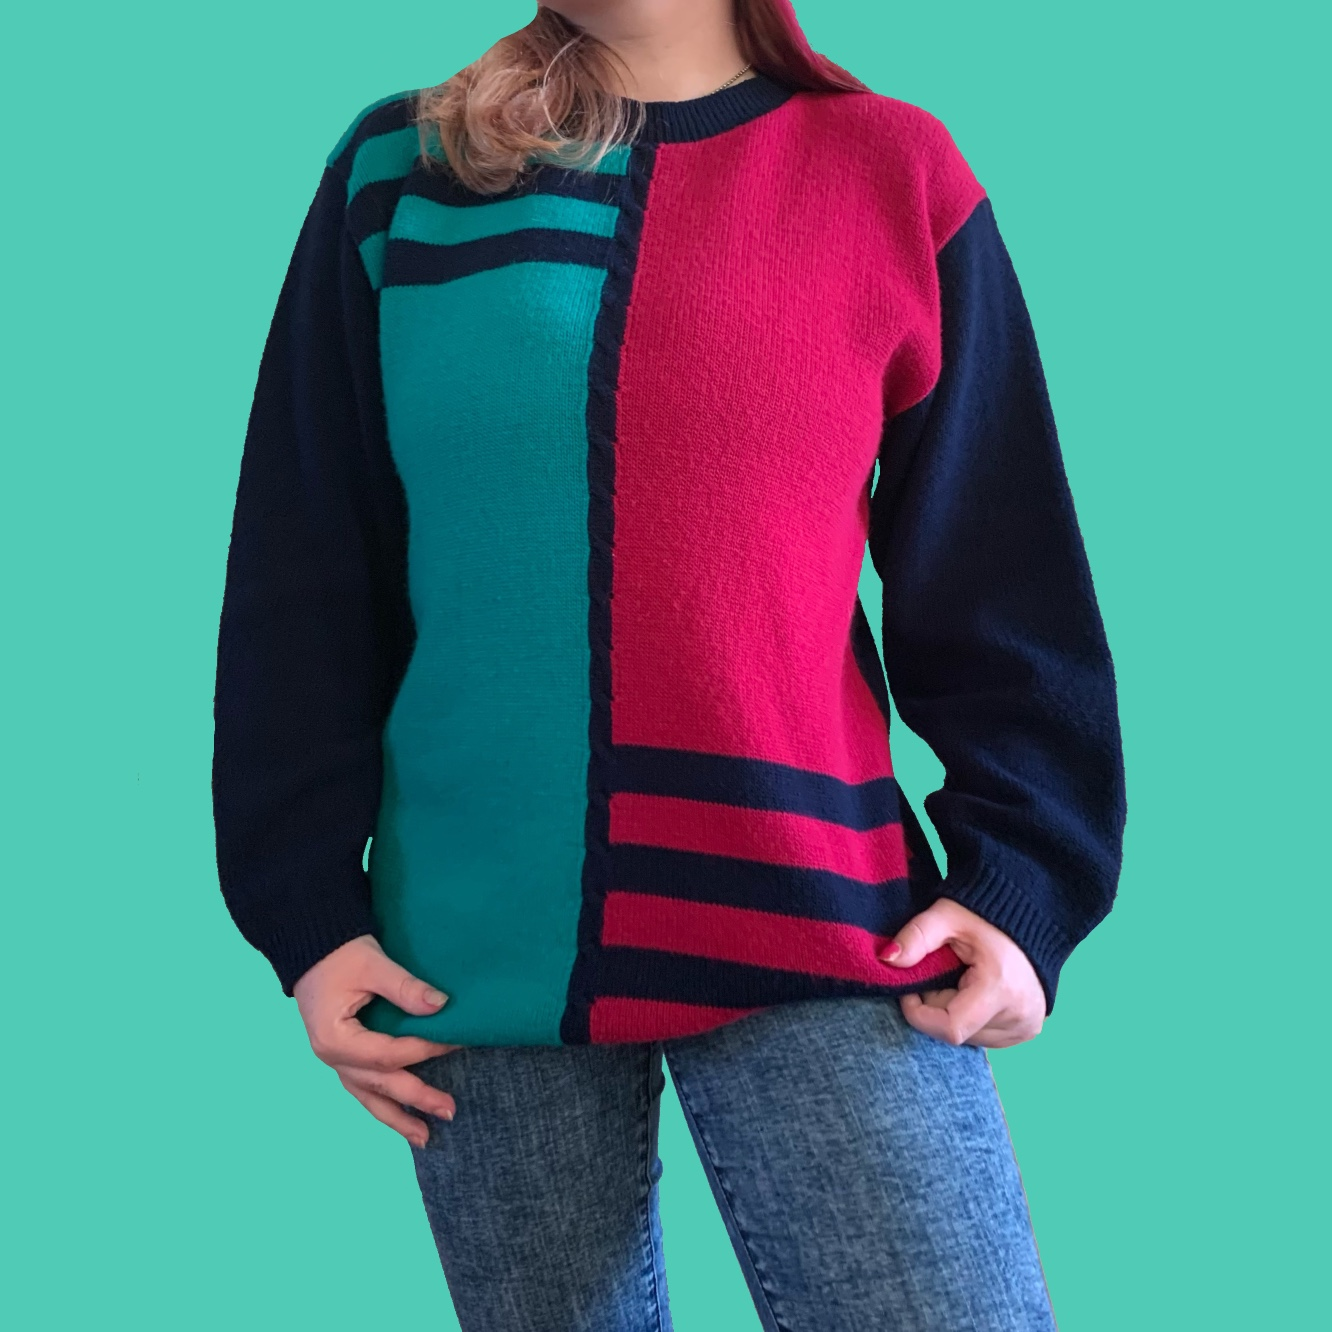 Product Image 1 - SUPER 80s COLORBLOCK SWEATER  this sweater